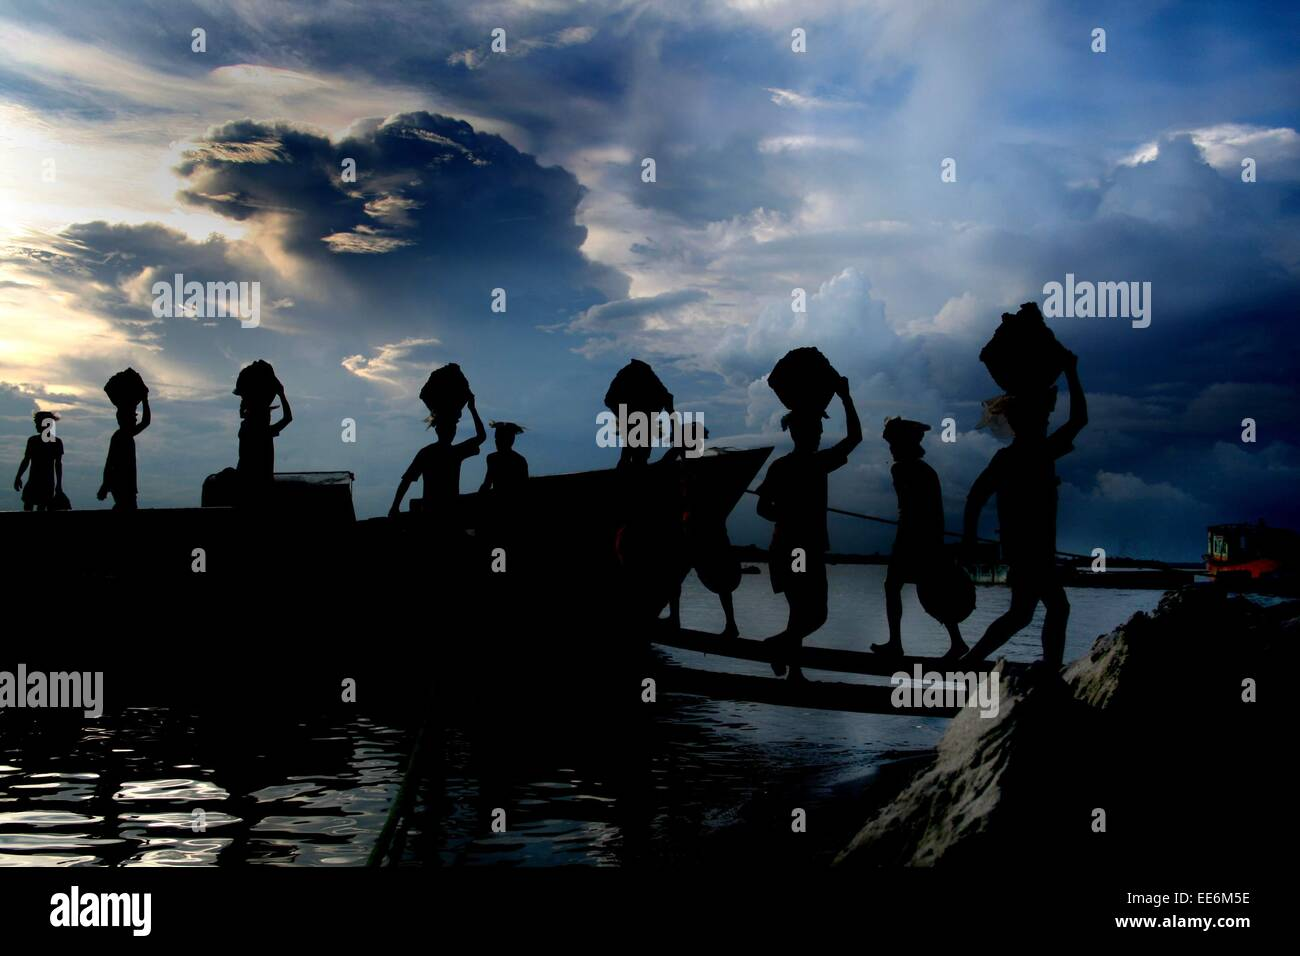 Bangladesh 10 January 2015. Workers unload earthen pots from a boat at a nearby village of the Bangladeshi capital - Stock Image